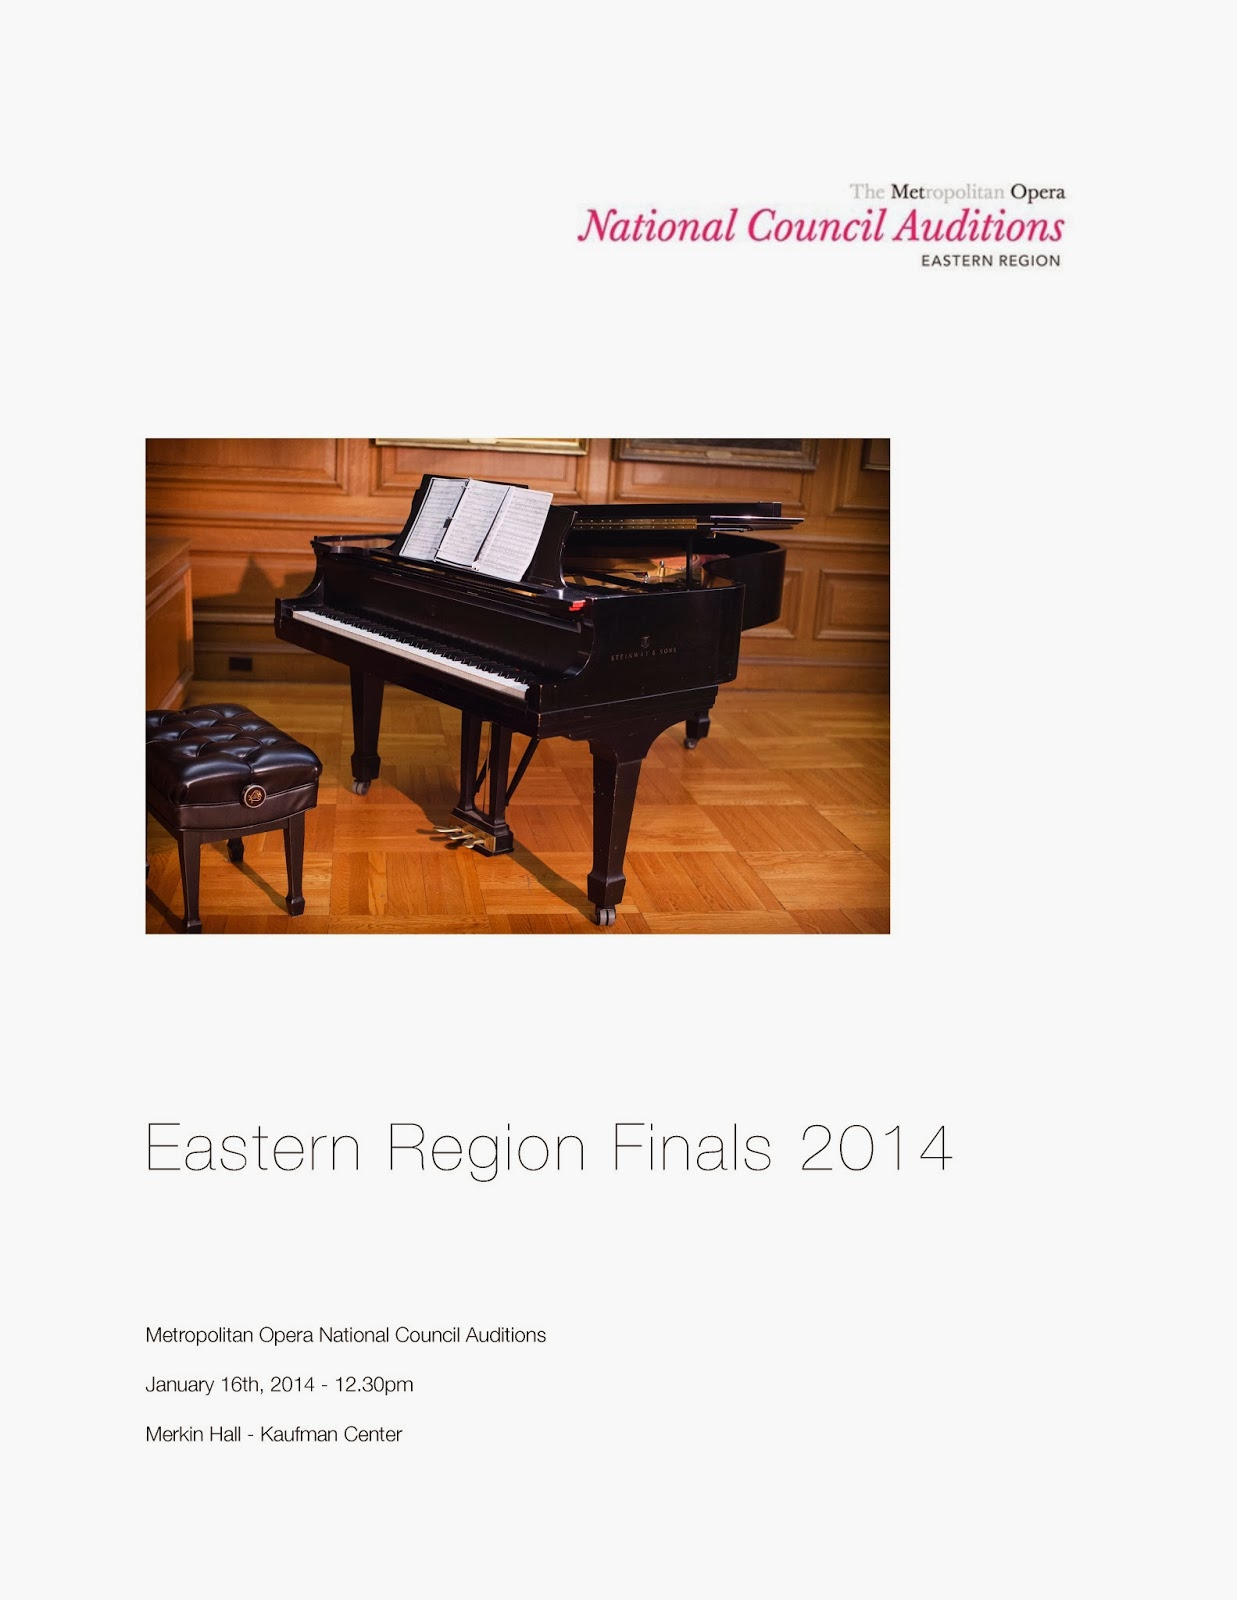 Region+Finals+Program+2014_Page_1.jpg